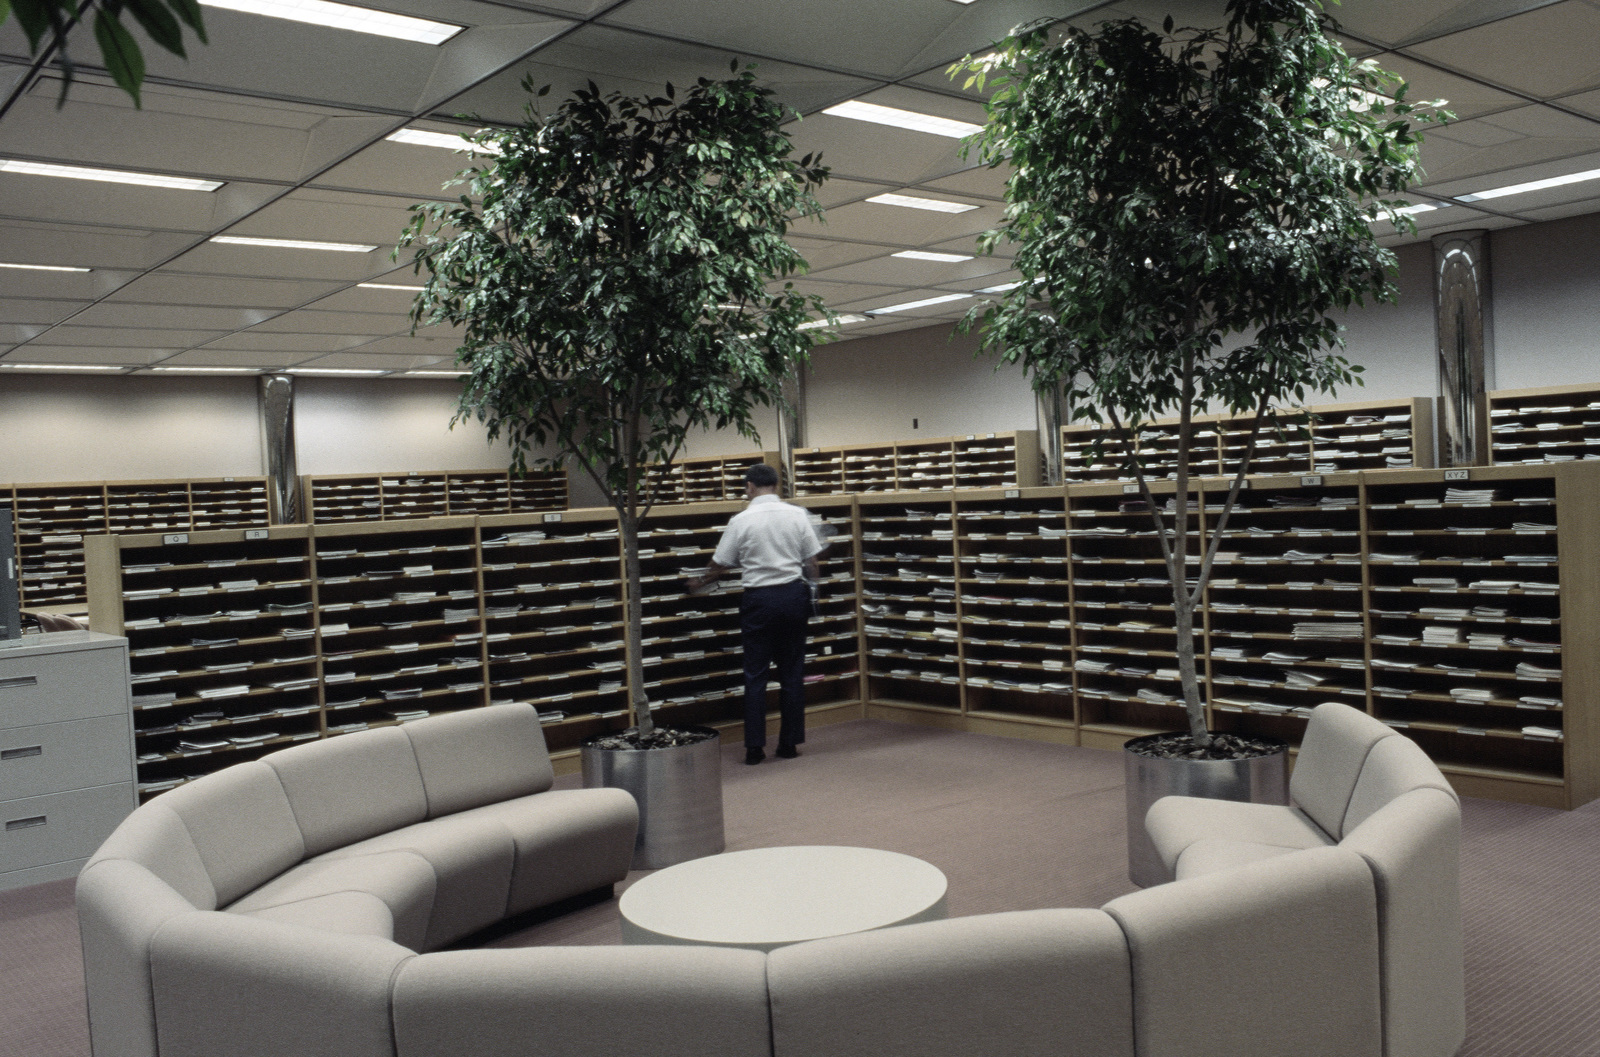 A view of the publications file/periodical library in Fairchild Library, Air University.  The university offers formal training in many areas of military studies to officers and senior non-commissioned officers in the Air Force